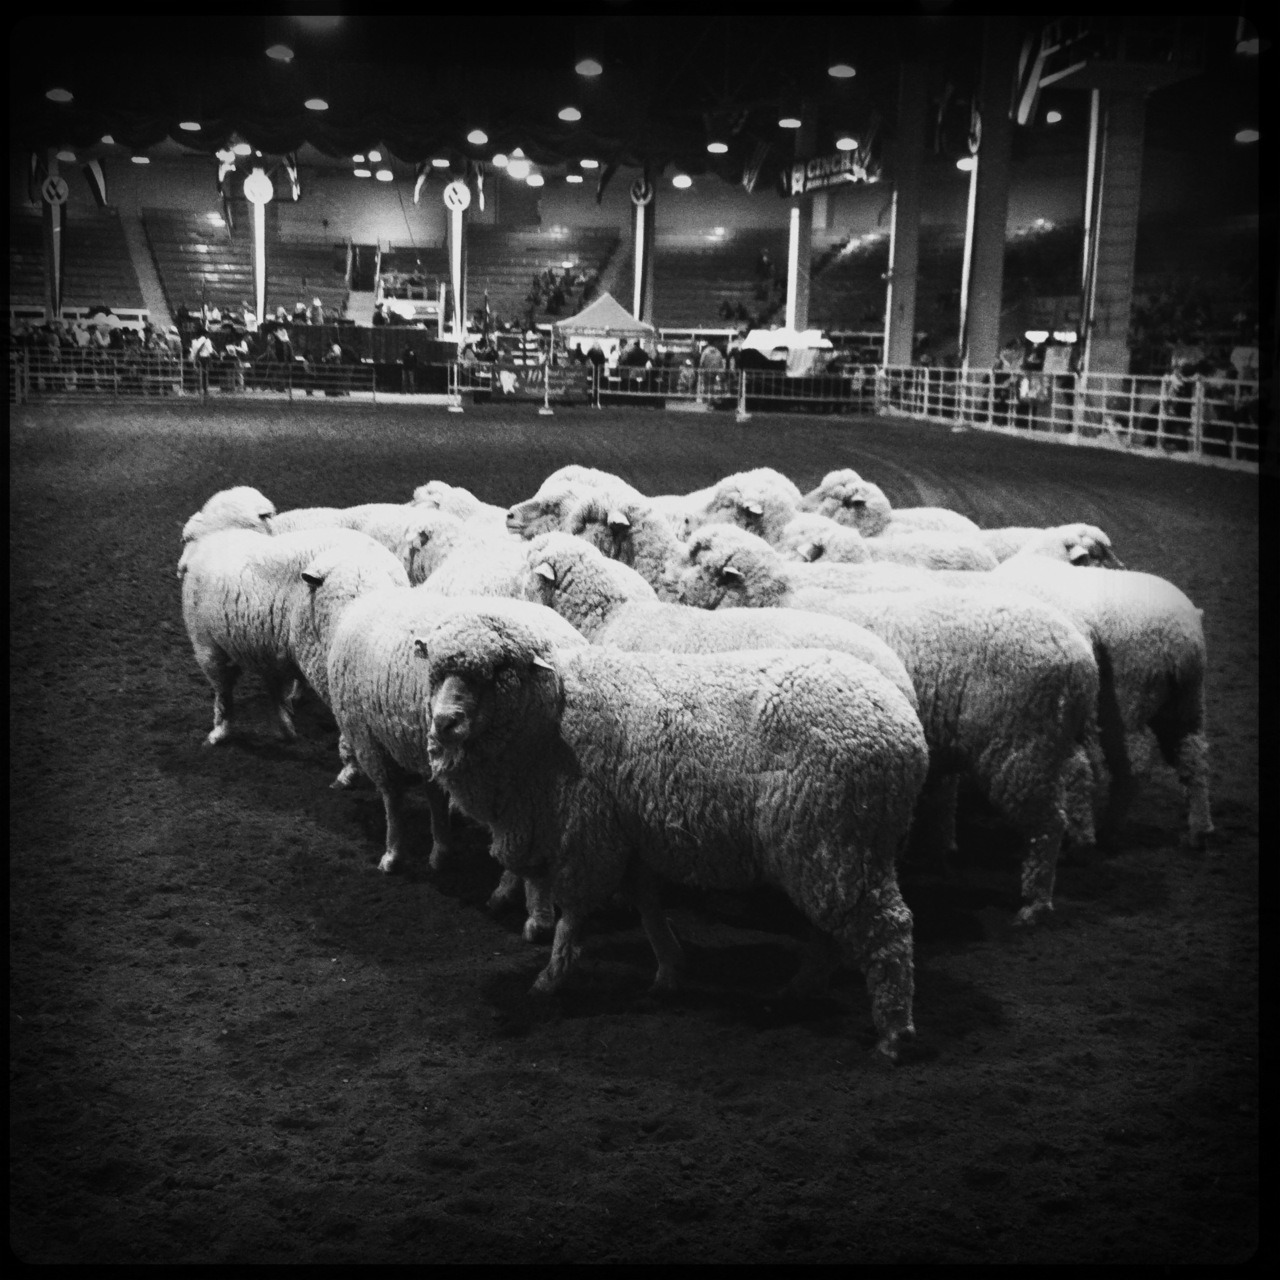 Sheep II Taken with Hipstamatic, Tejas Lens, Rock BW-11 Film, No Flash.